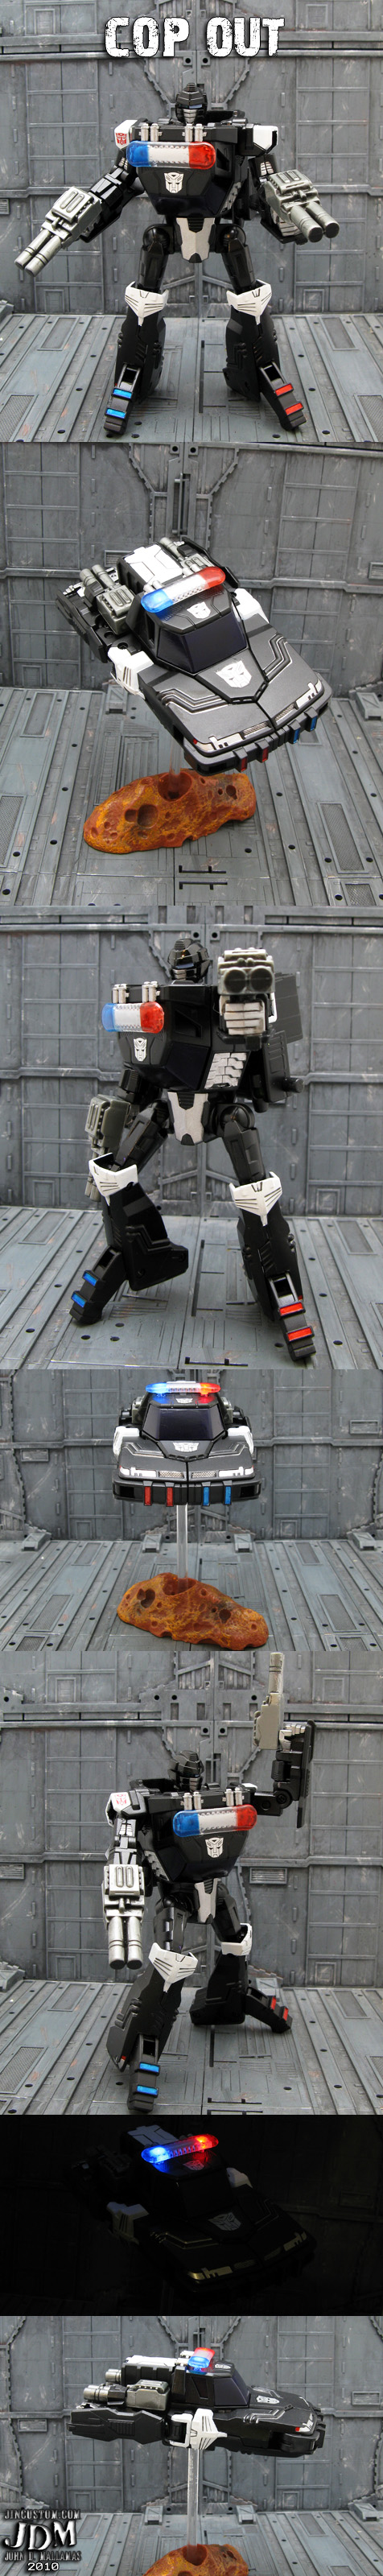 Transformers Police